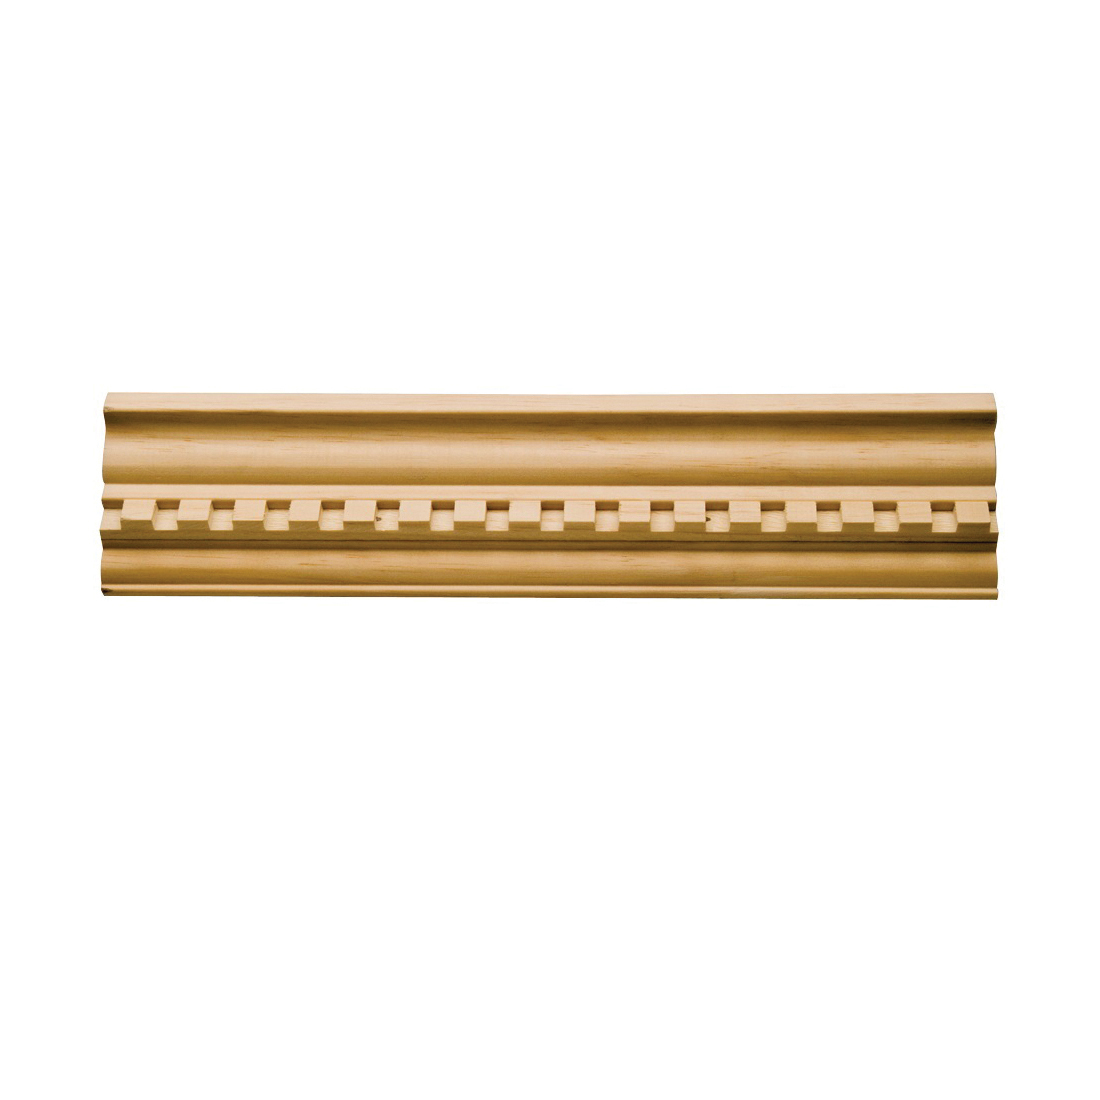 Picture of Waddell MLD355 Crown Molding, Dentil Pattern, Zinc